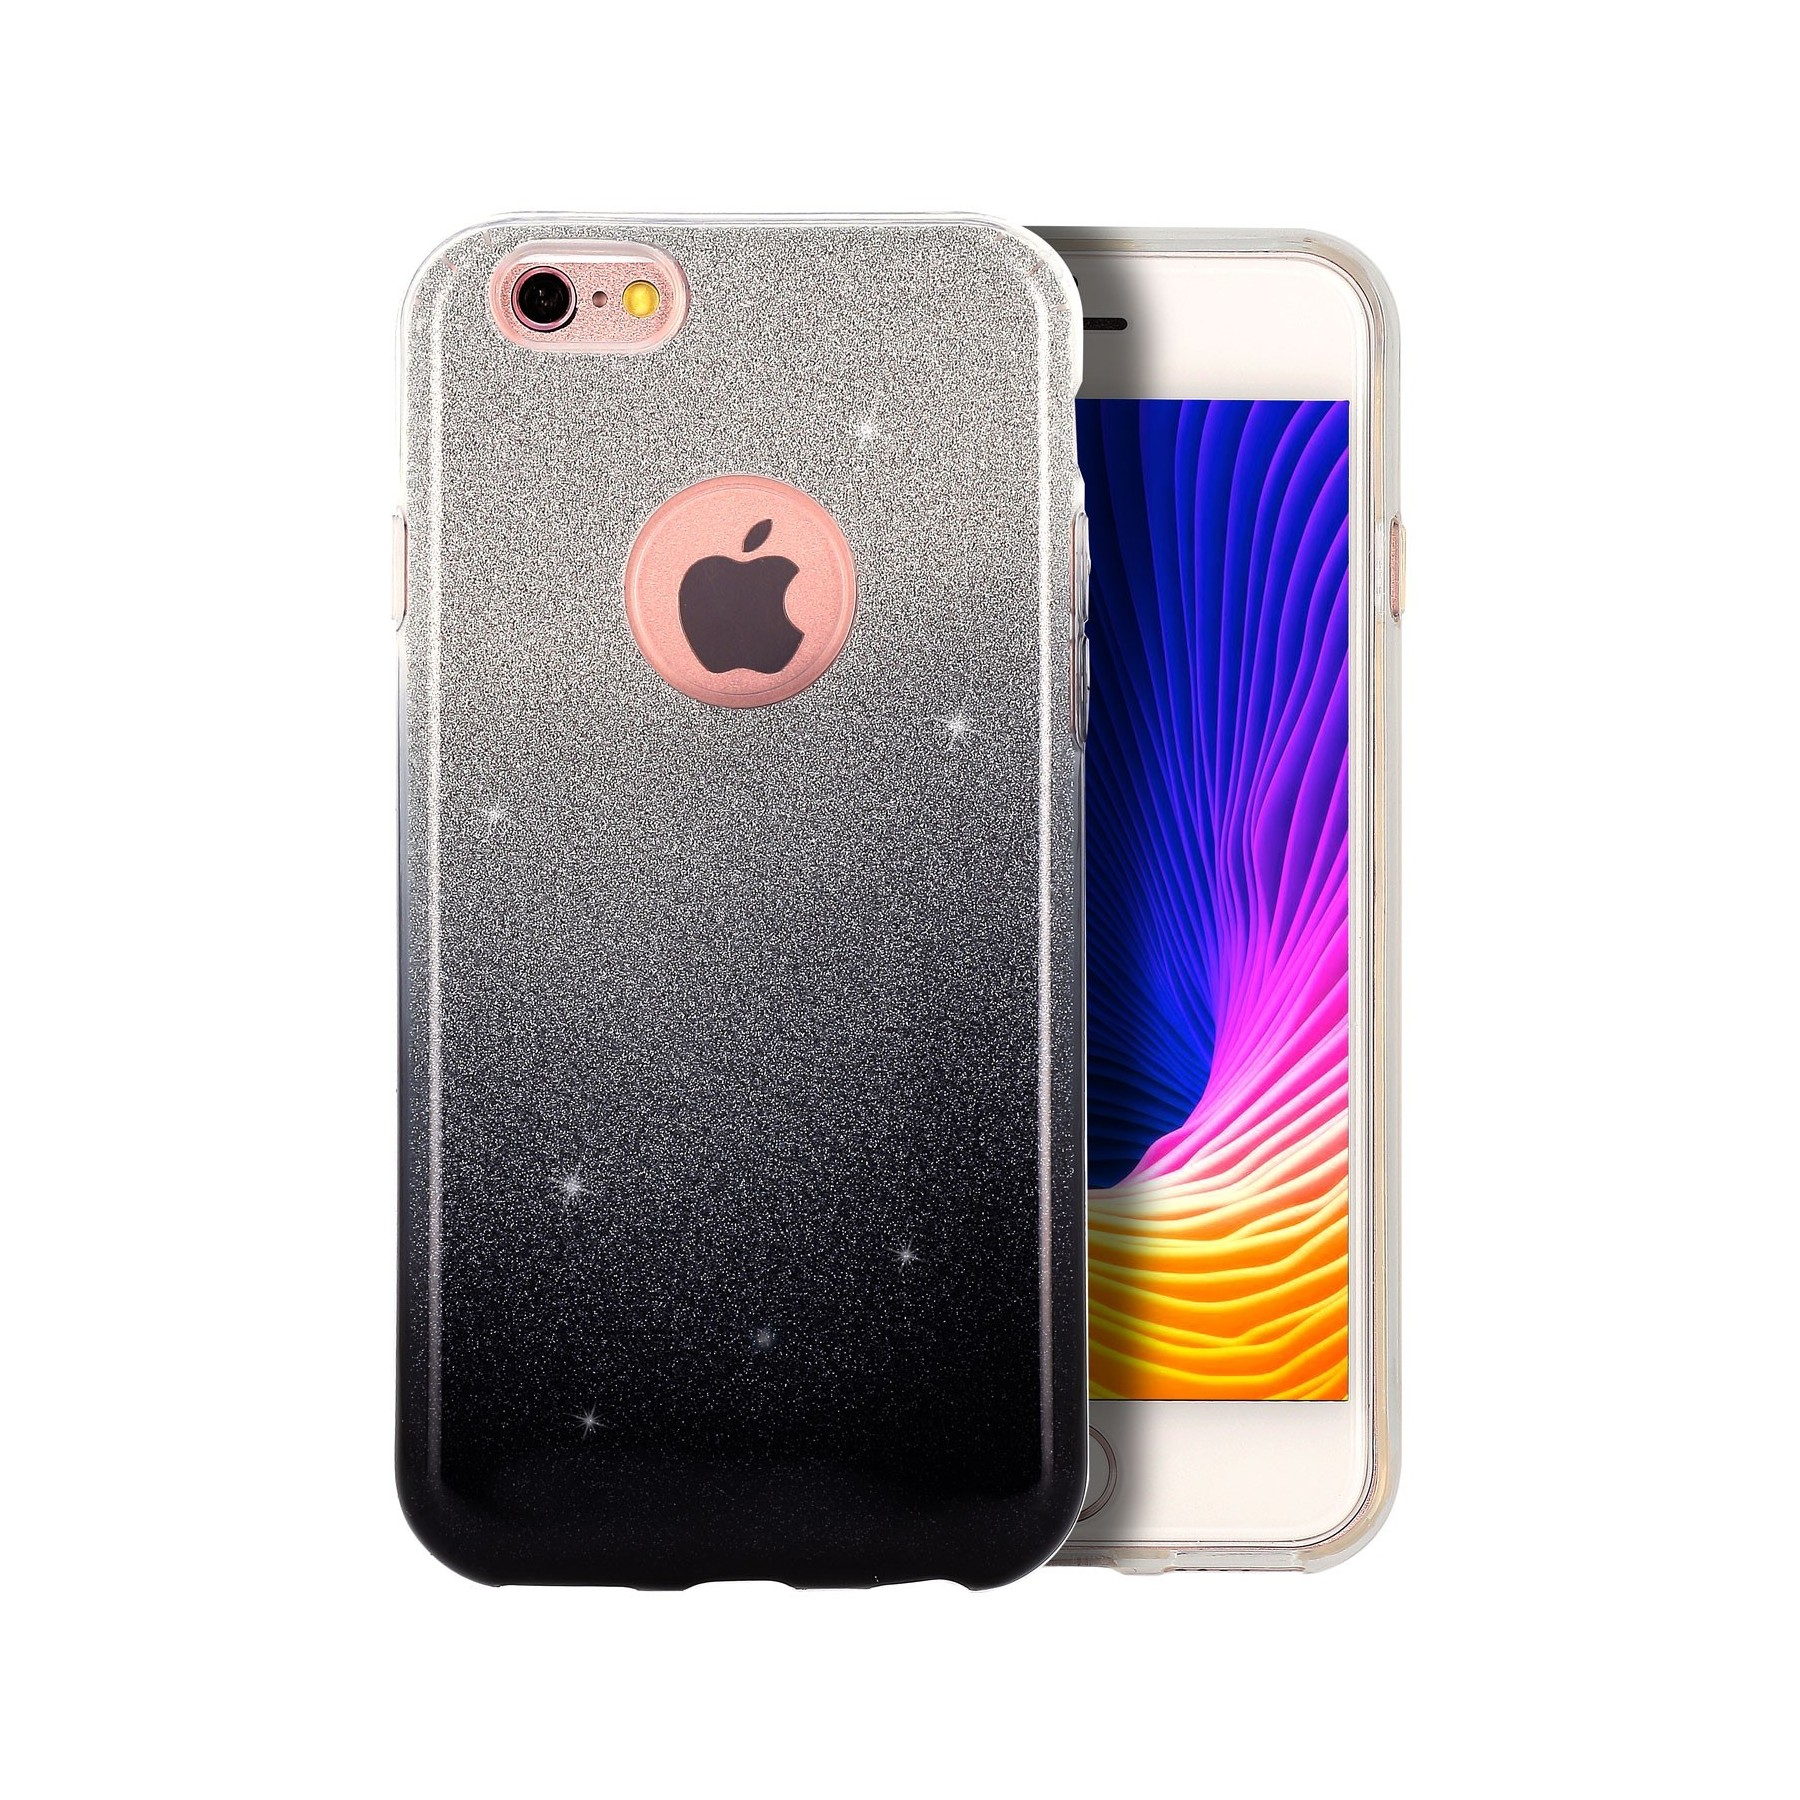 coque strass degrade noir pour apple iphone 6 plus iphone 6s plus